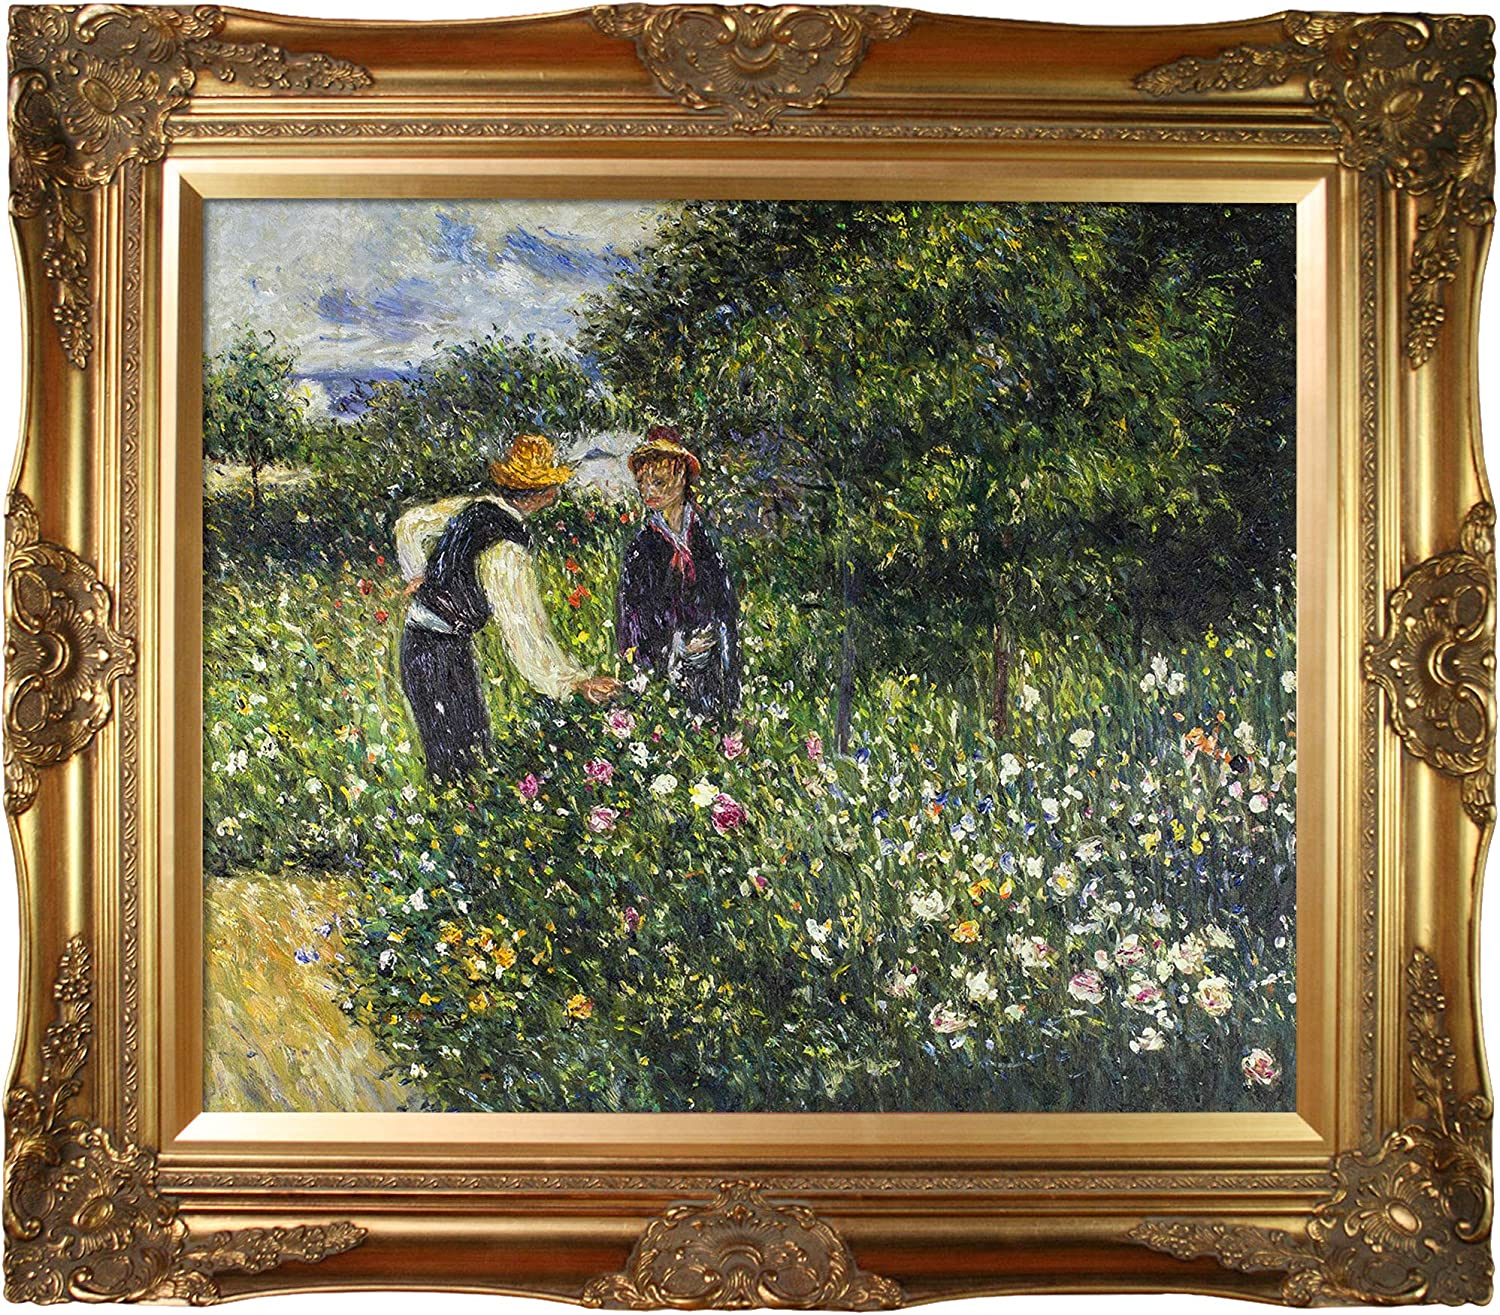 Gold overstockArt Picking Flowers 1875 by Pierre Auguste Renoir with Pearl Frame